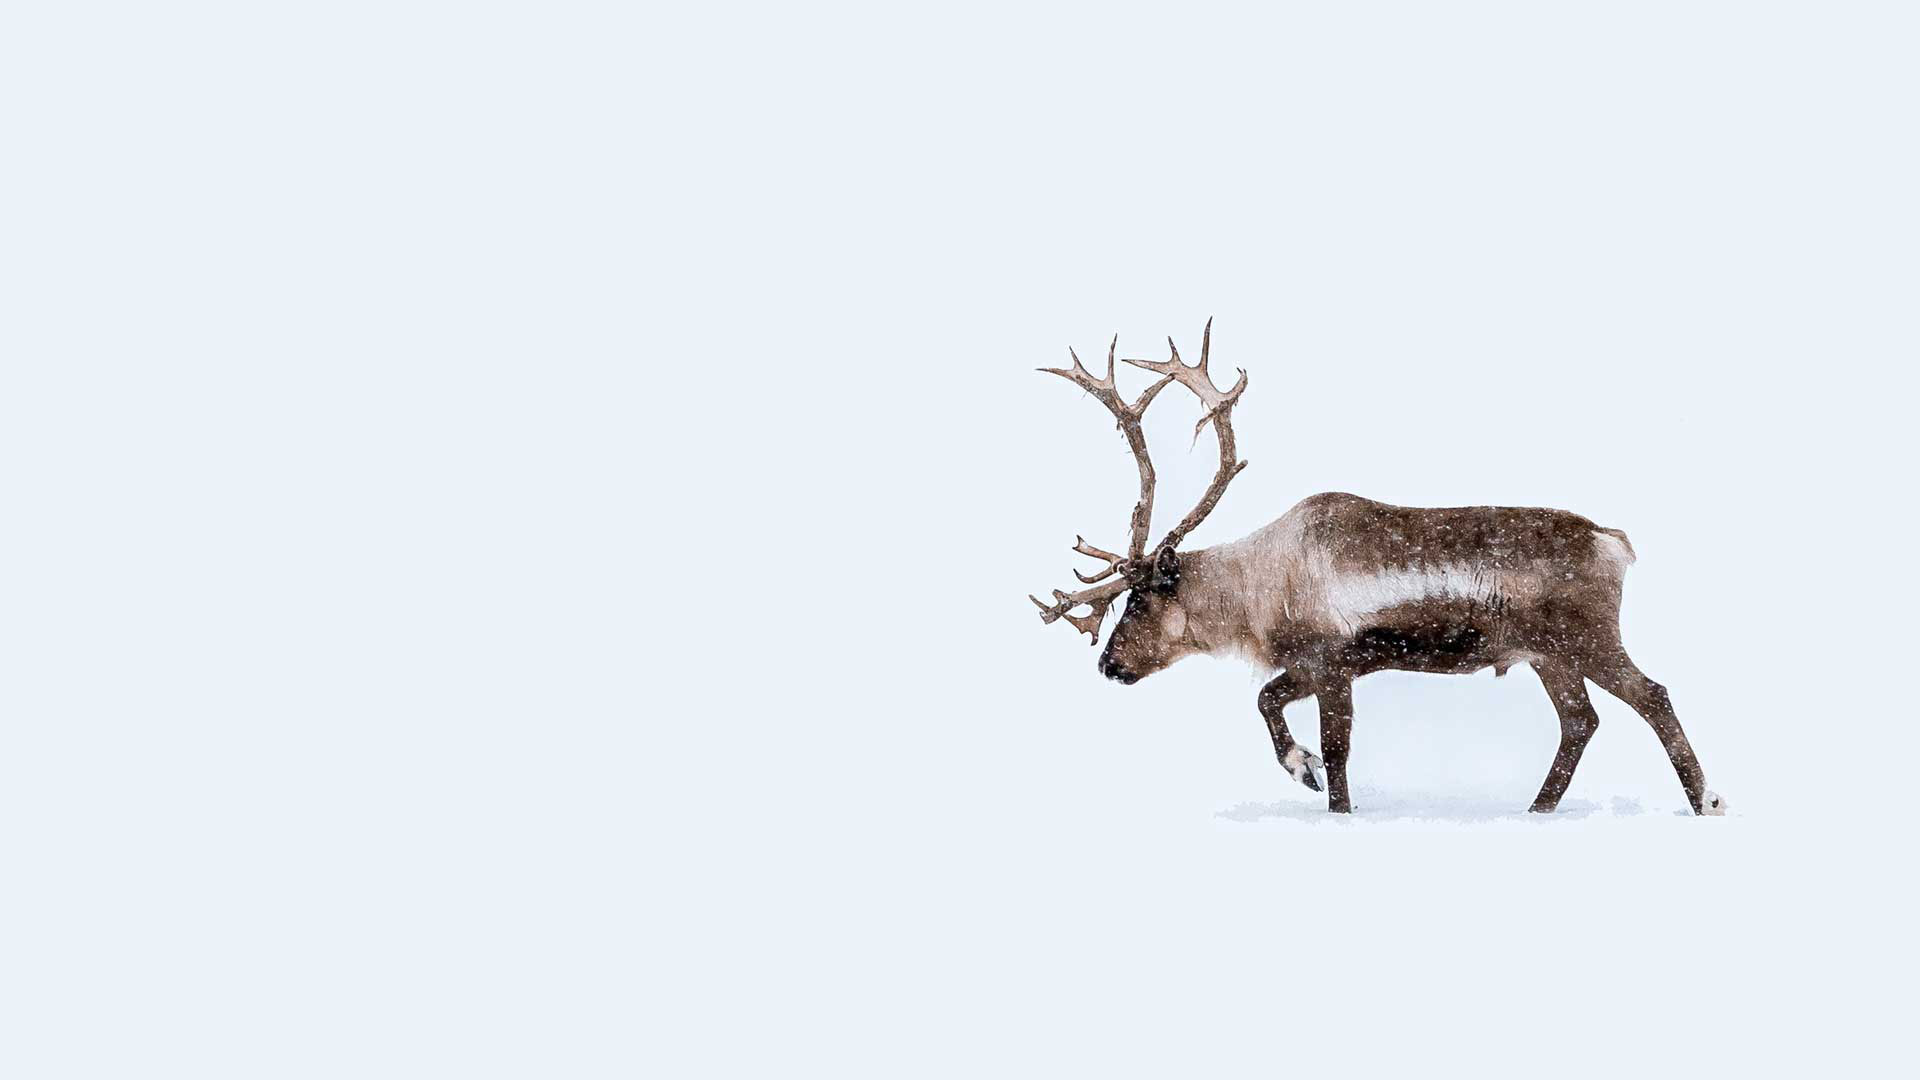 Neon Reindeer Marketing, Health & Wellbeing Marketing Consultant